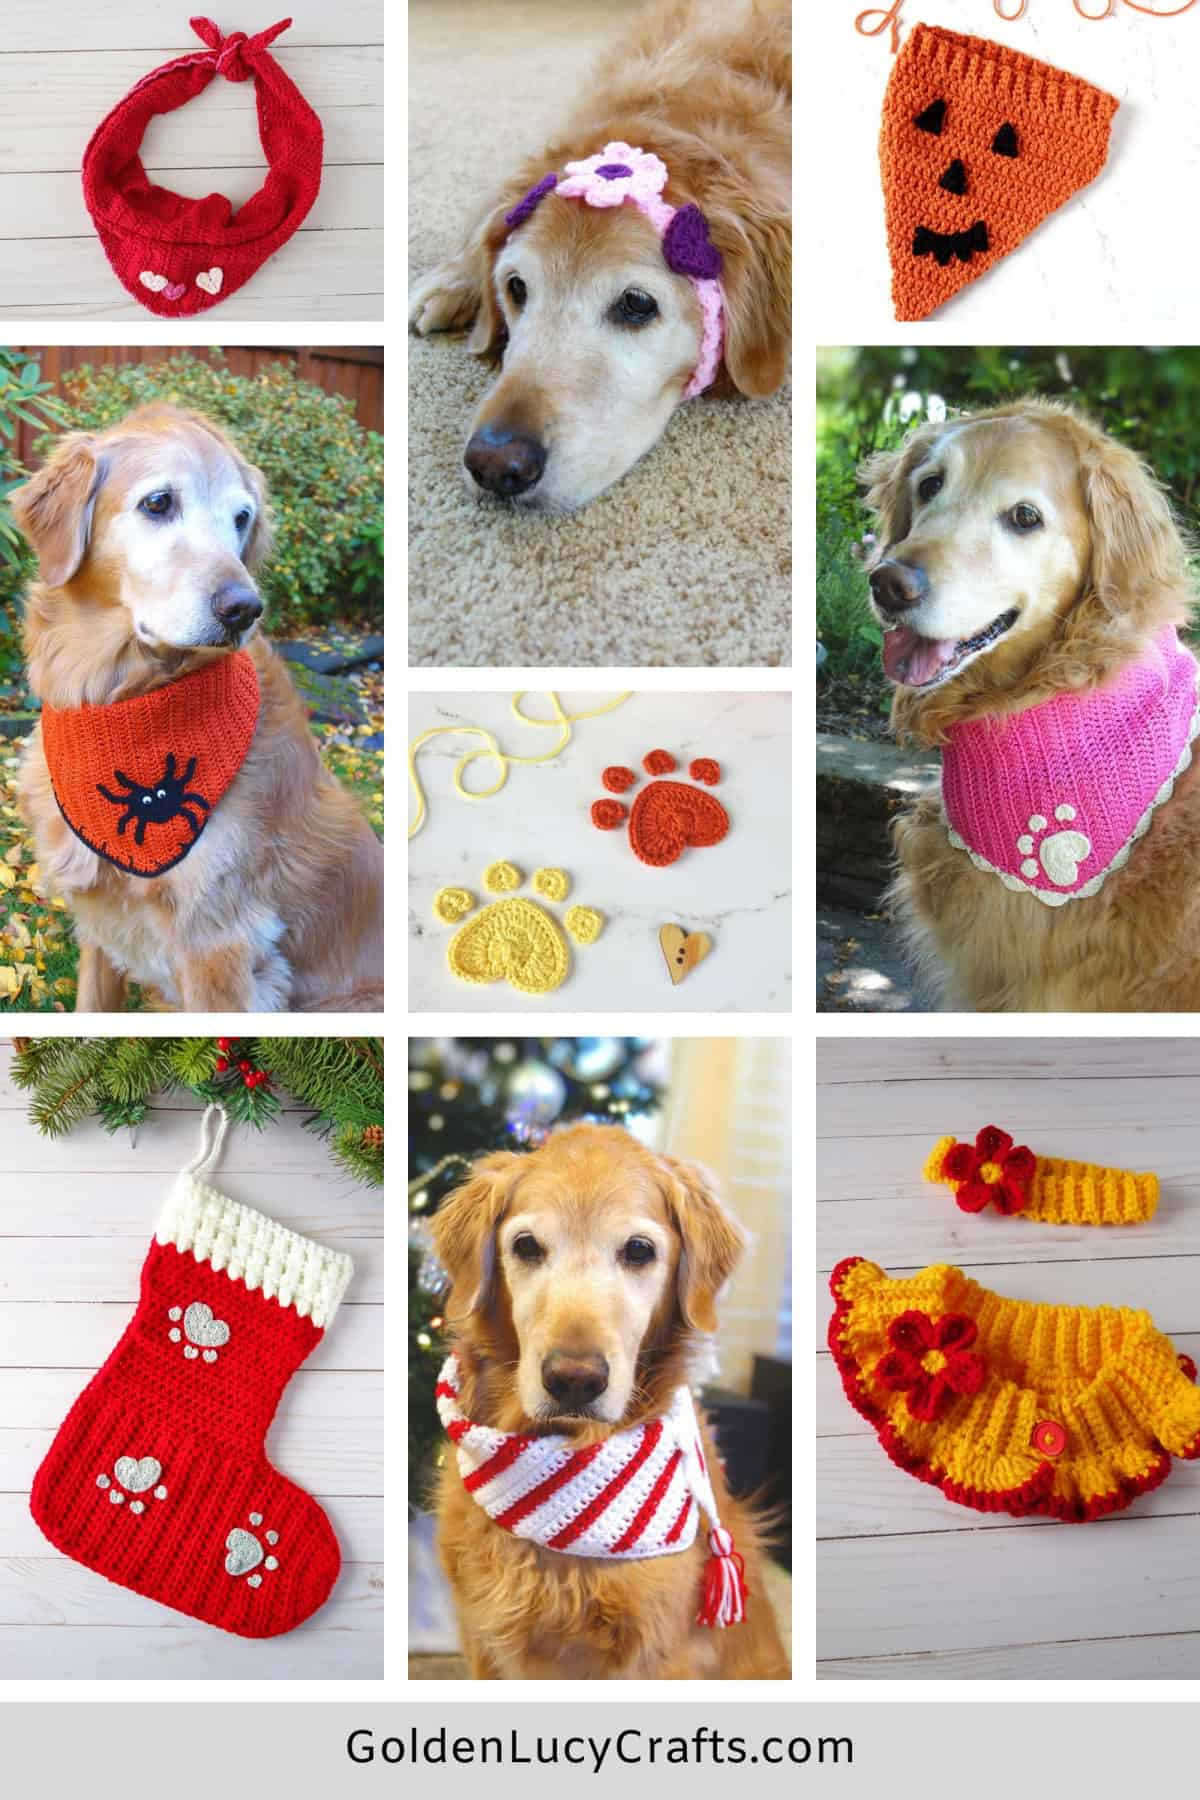 Images collage - golden retriever dressed in crochet items, crochet patterns for dogs.